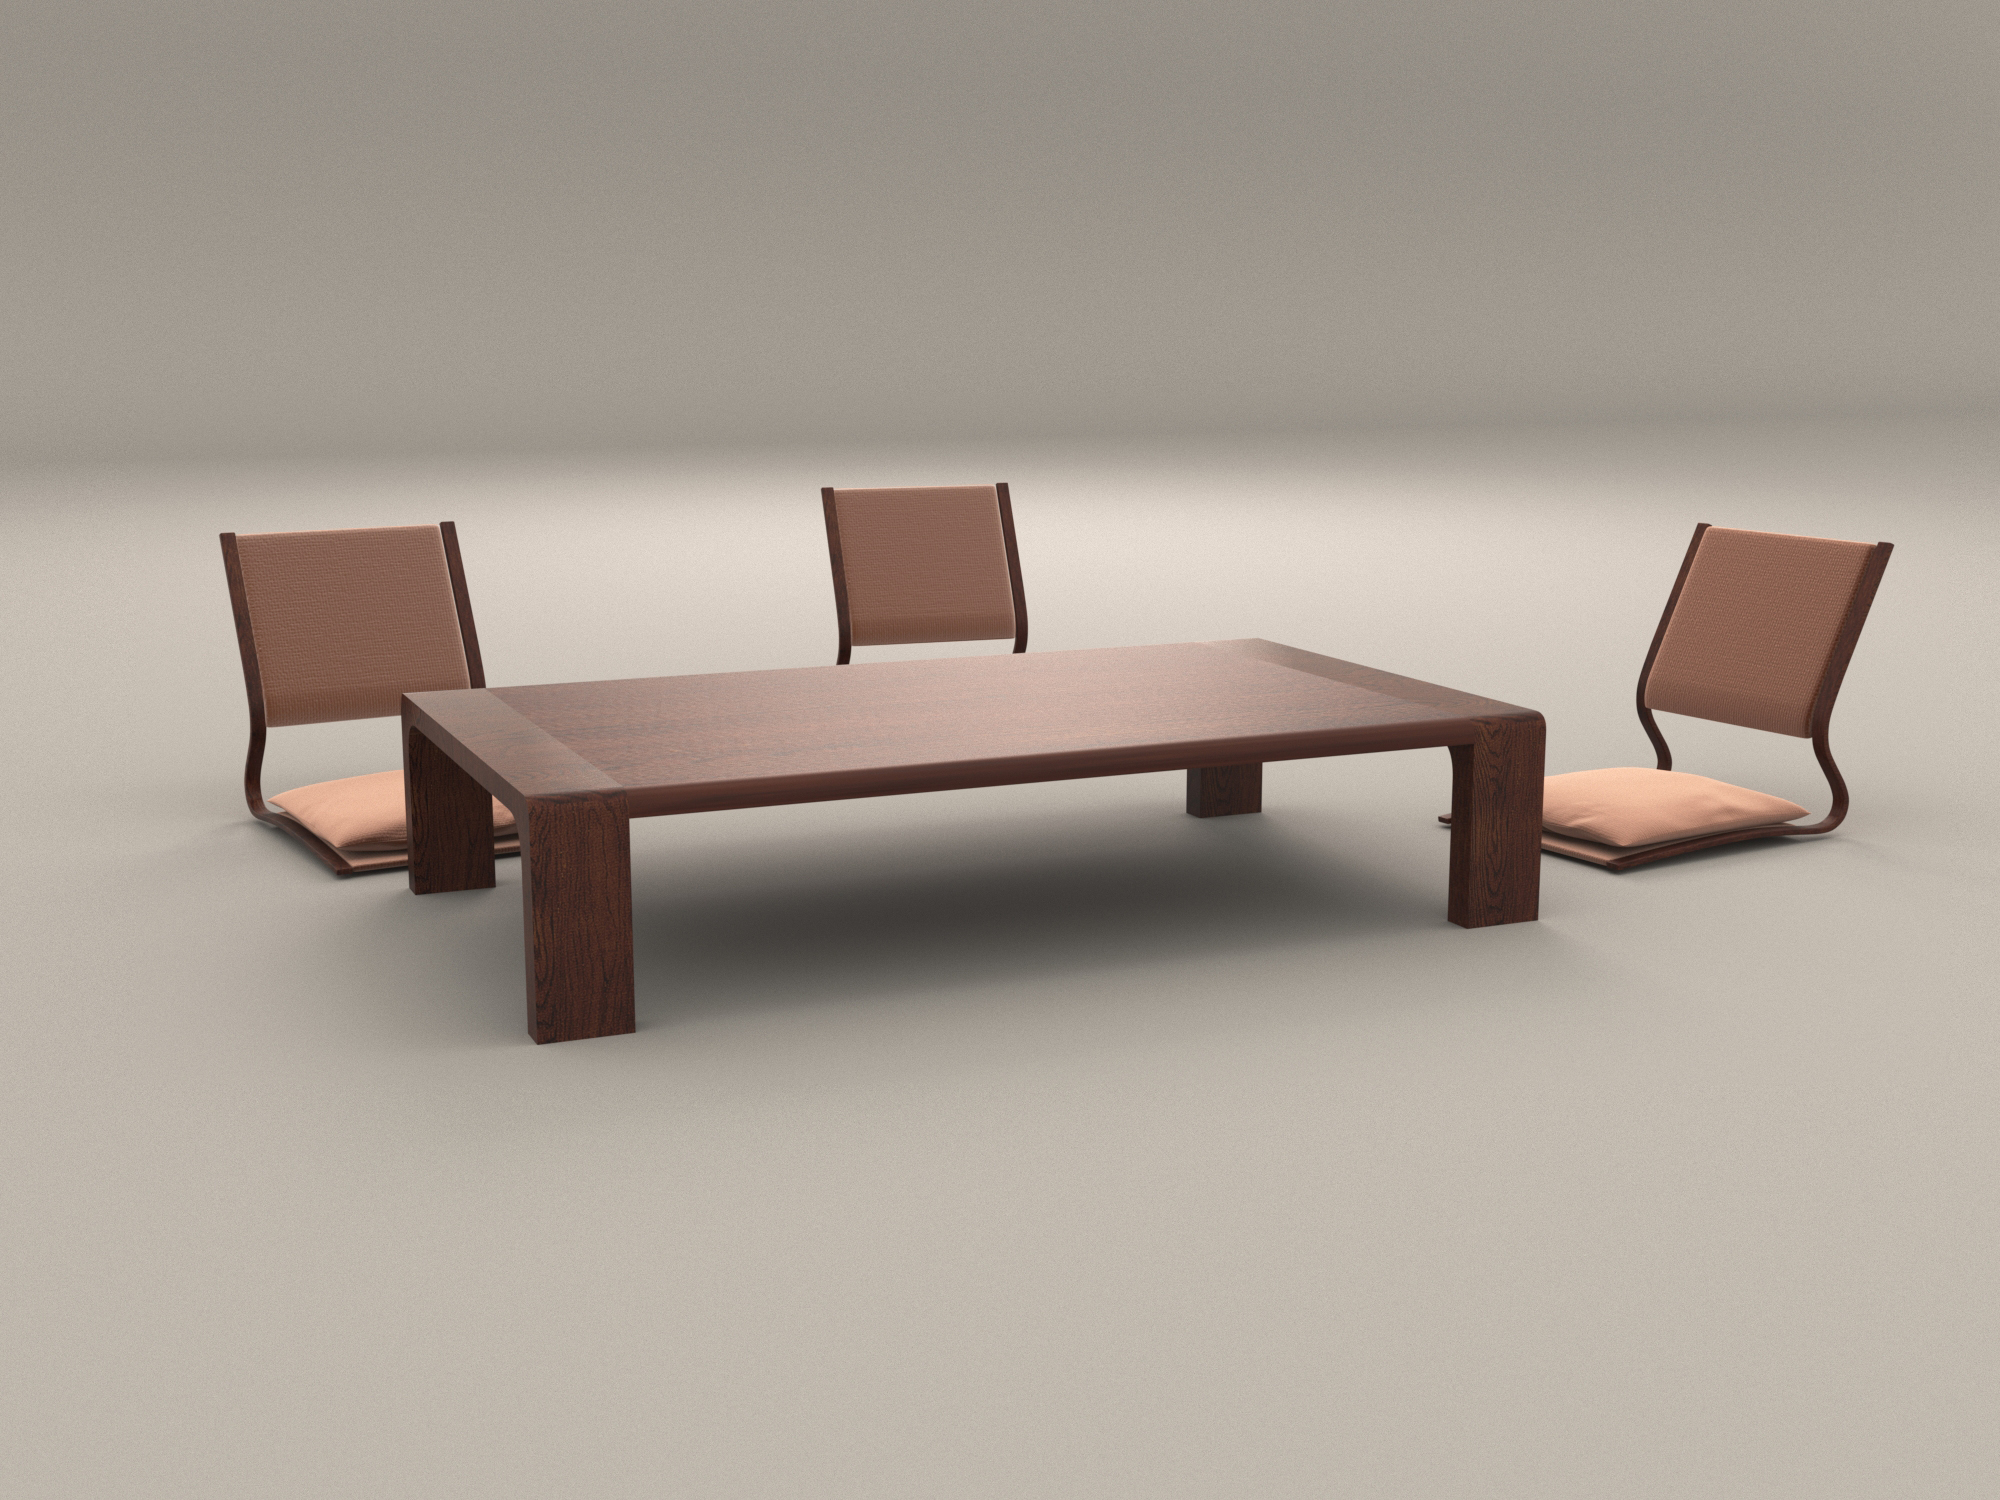 Japanese style low dining table and chair by artemishe for Low dining table